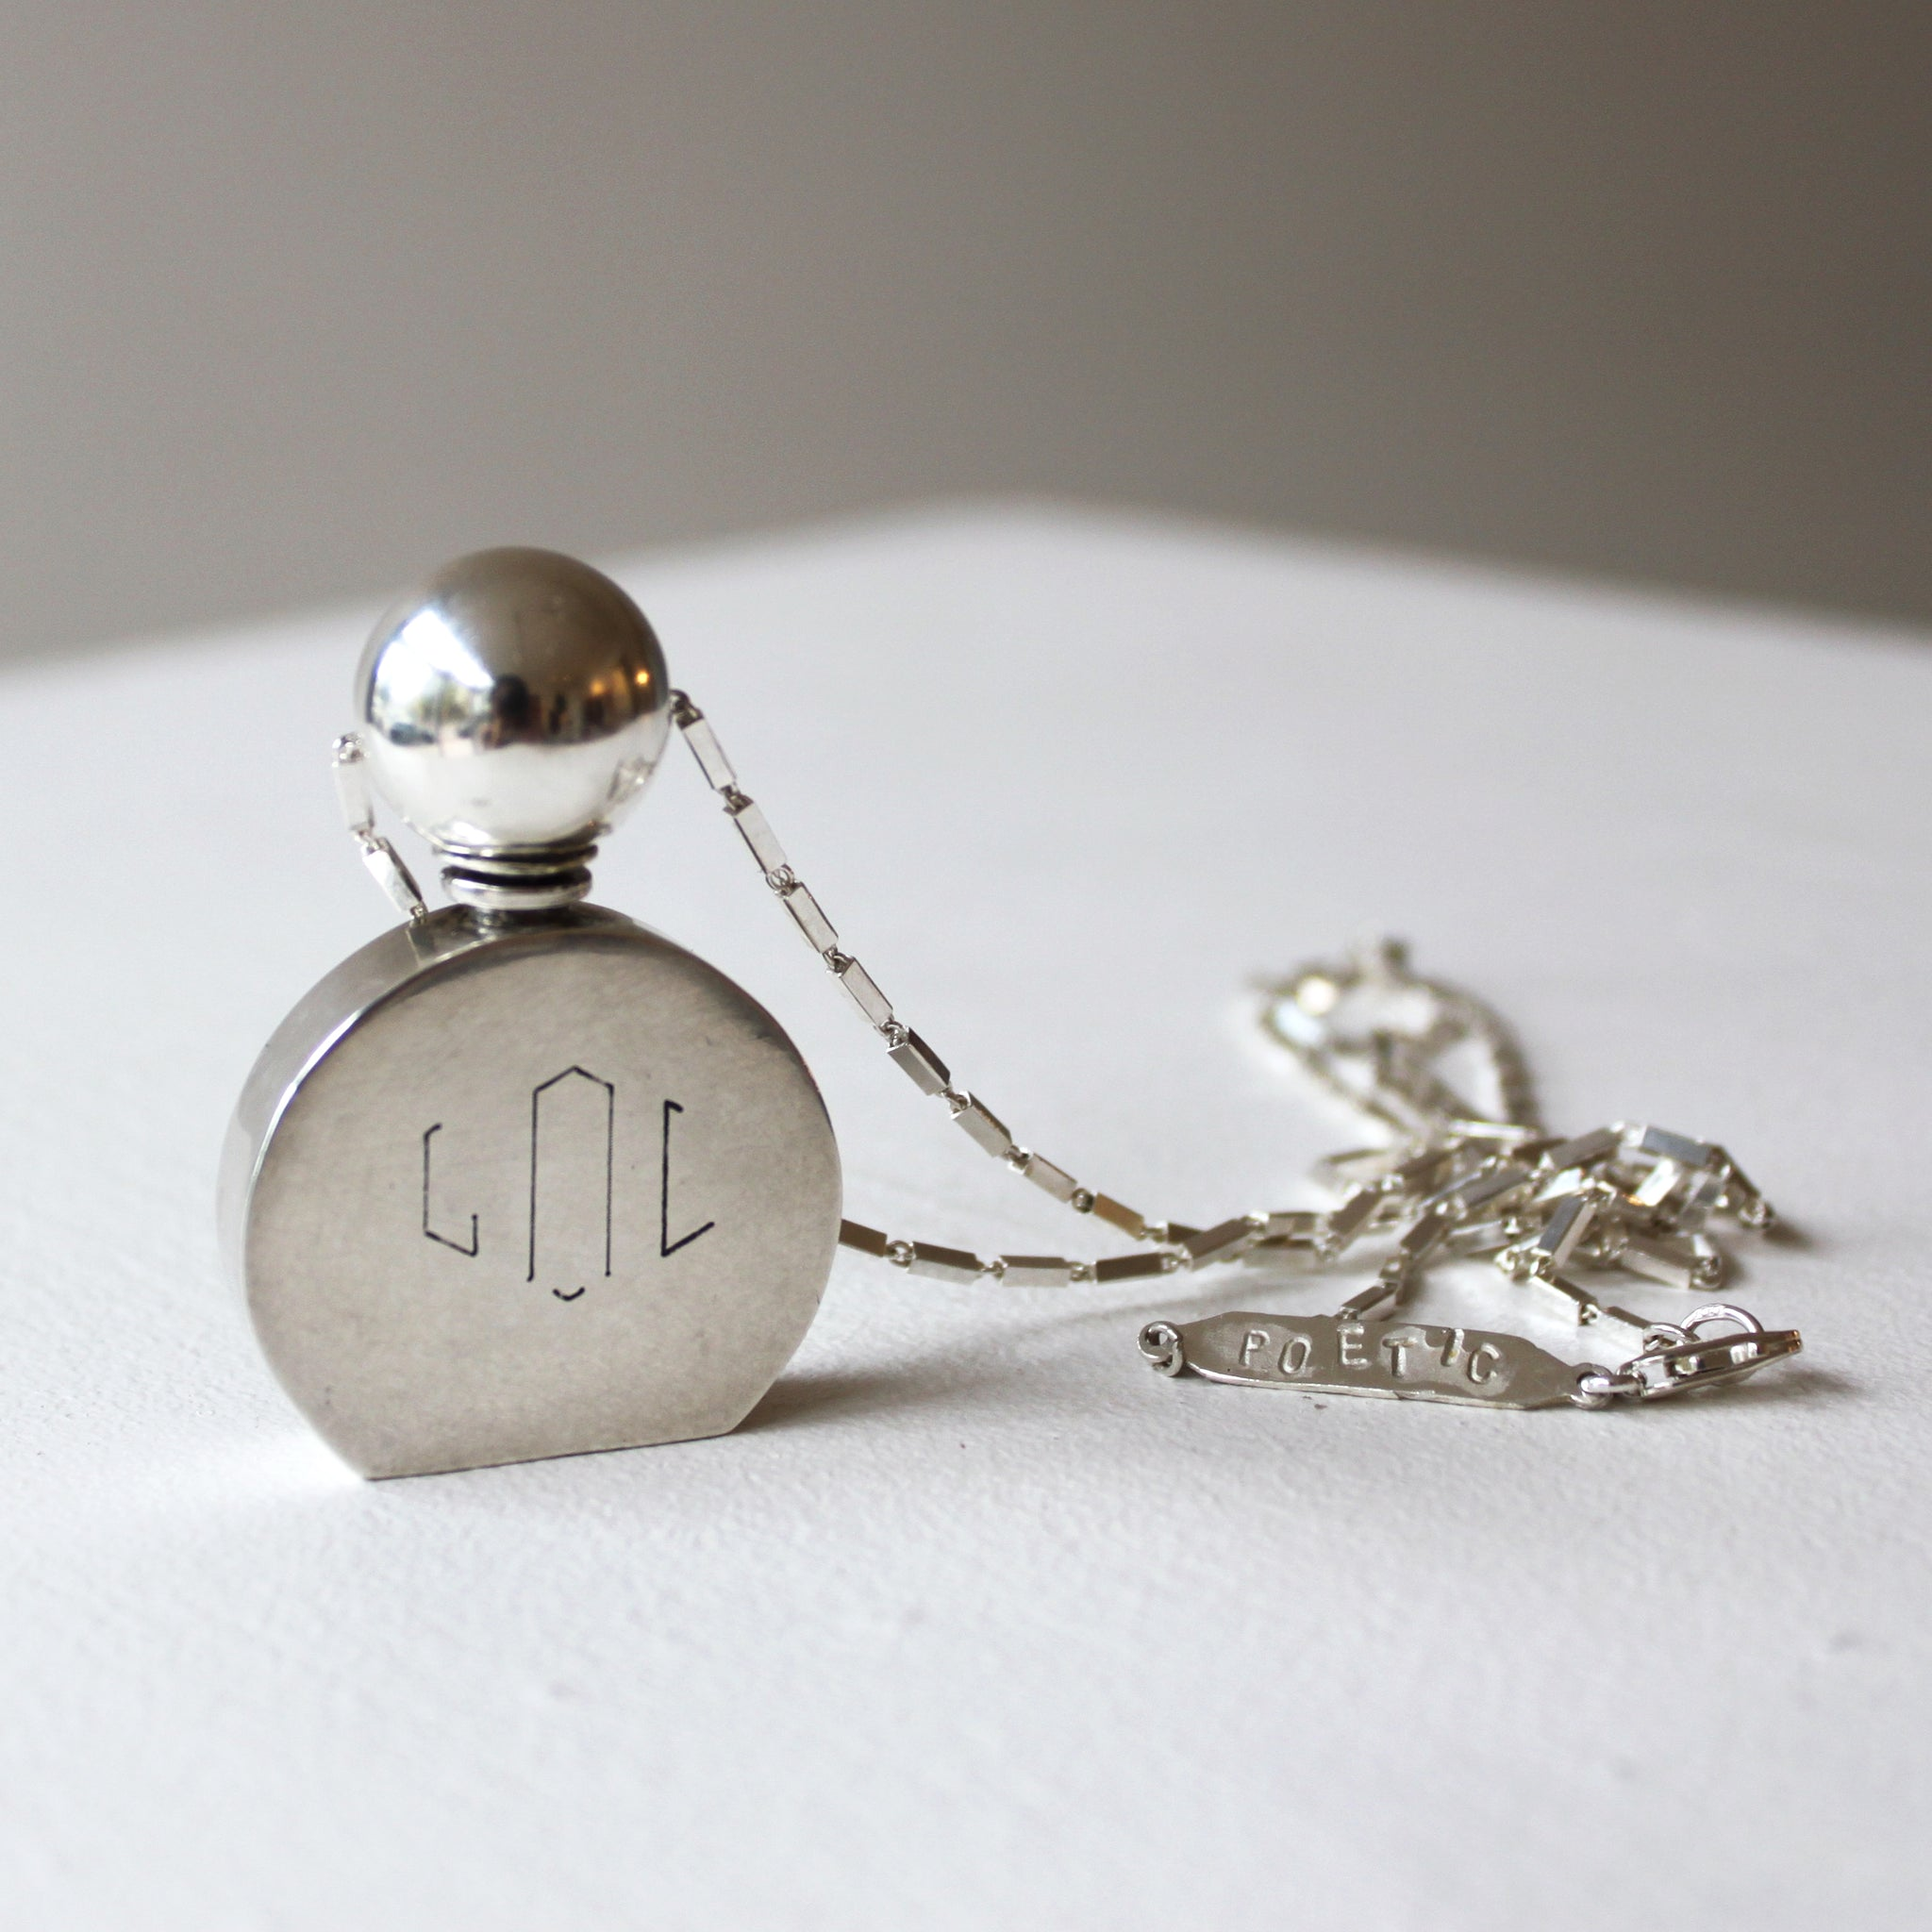 ORNAMENT & CRIME 'ANTONIN' PERFUME CONTAINER NECKLACE OC19